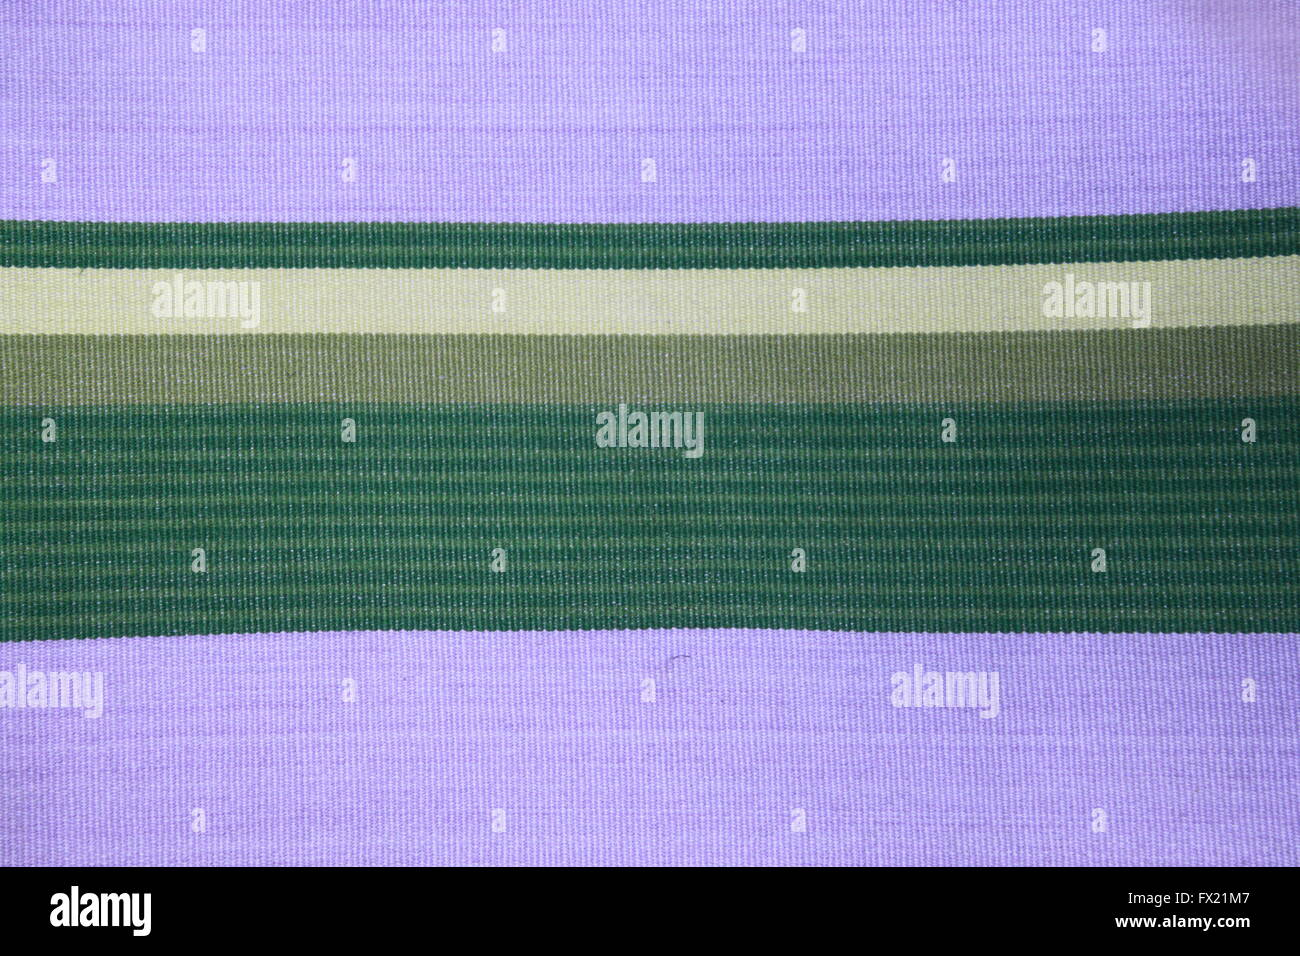 Lavender / purple, khaki and green horizontally striped woven fabric - Stock Image